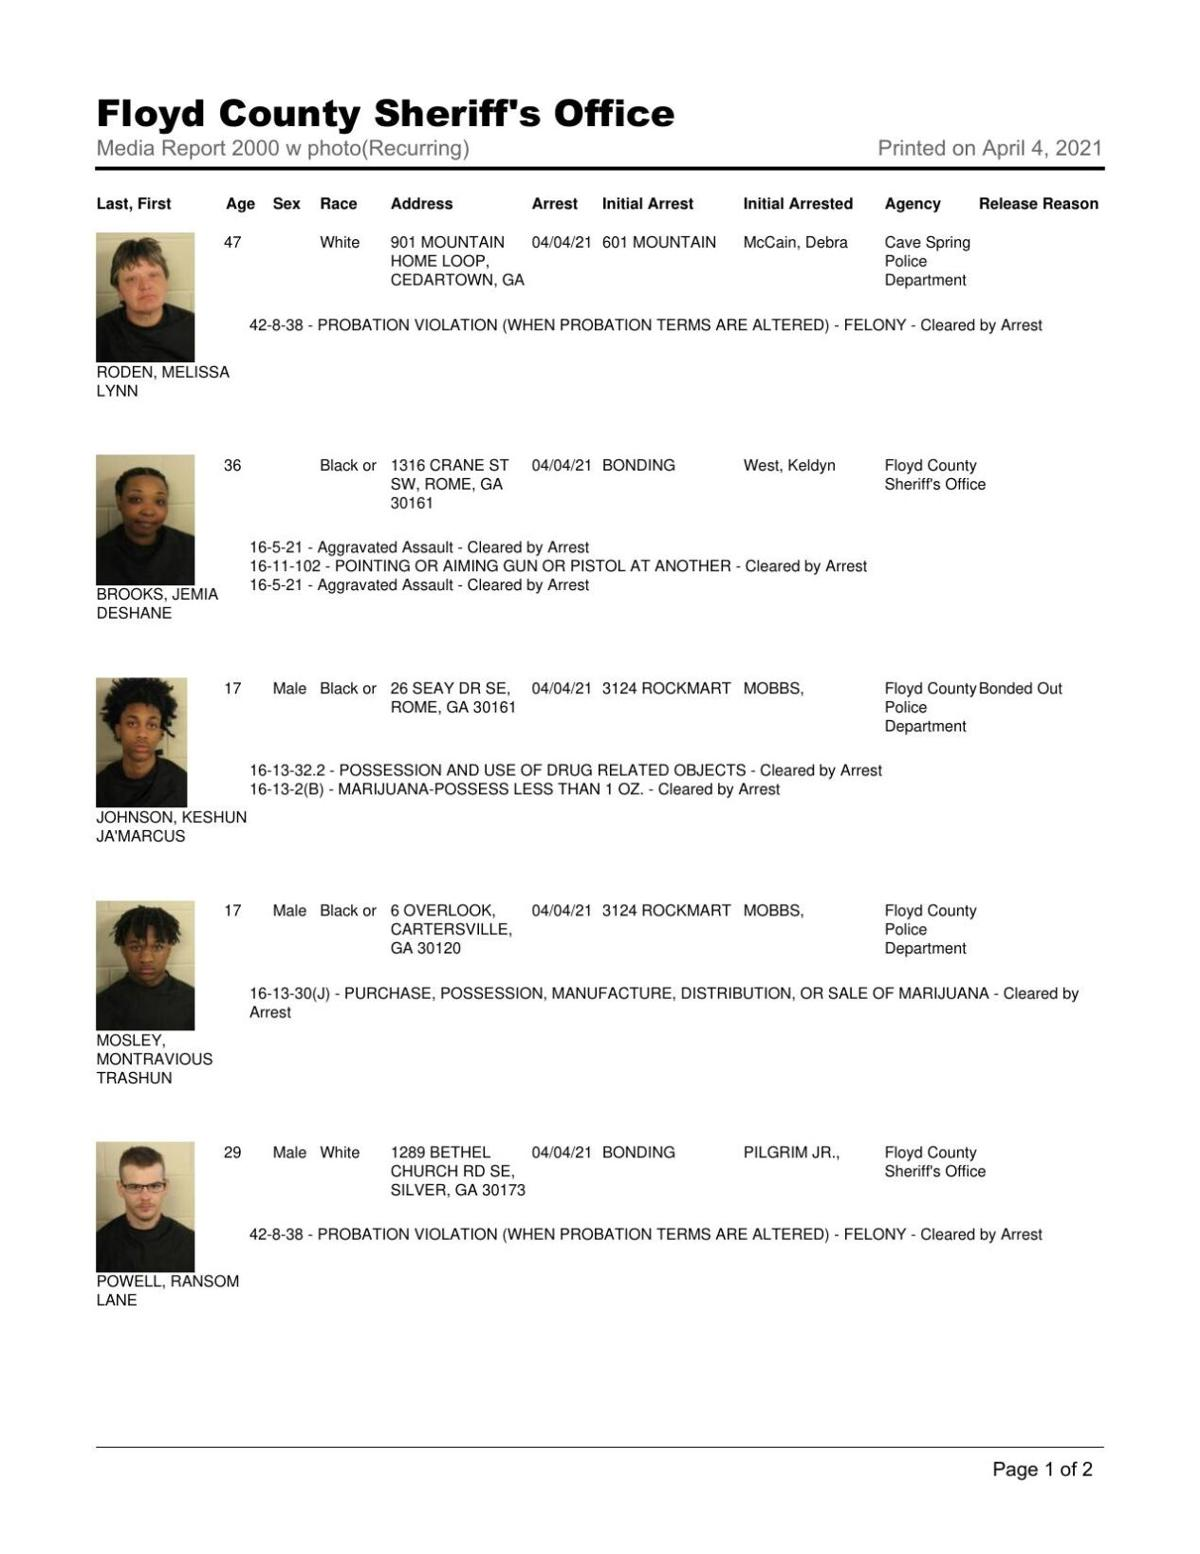 Floyd County Jail report for 8 pm Sunday, April 4